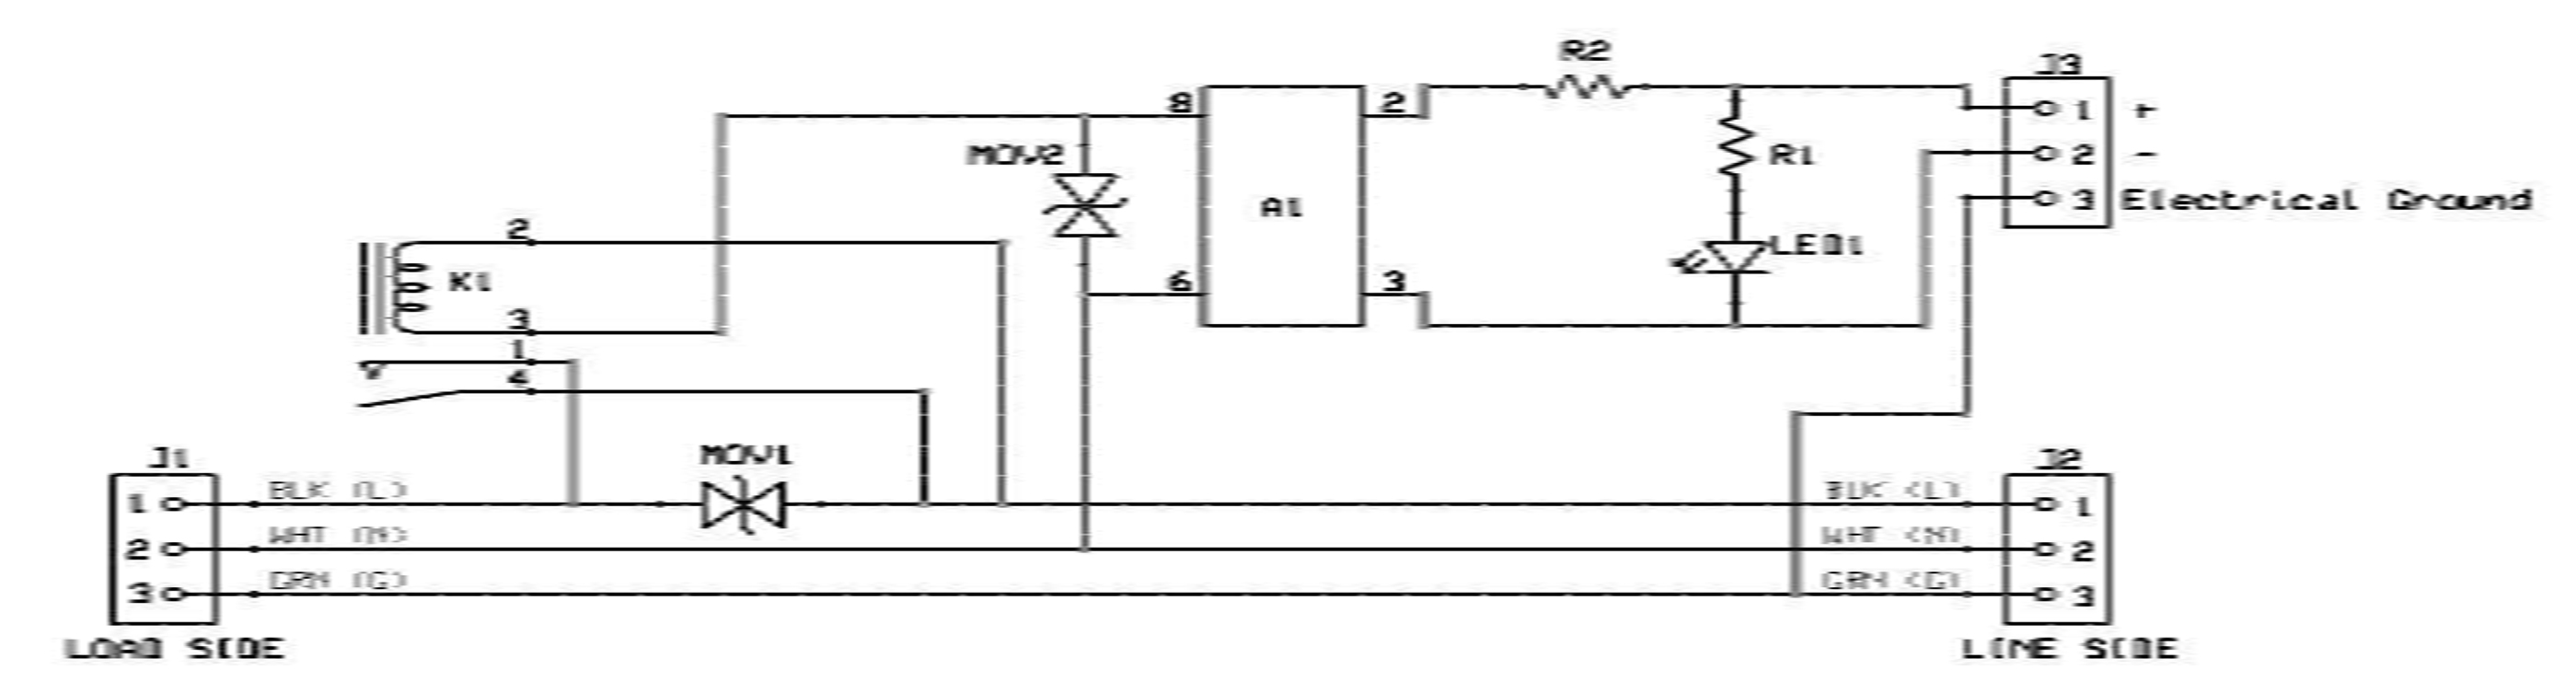 CADian Piping in addition Schematic To Wiring Diagram Check For 3 Mic Mixer Circuit Using Tl081 likewise Stereo  lifier Tda1554 also 20 further Electrical Wiring Diagram For 1942 Chevrolet Passenger Cars. on draw a simple schematic diagram